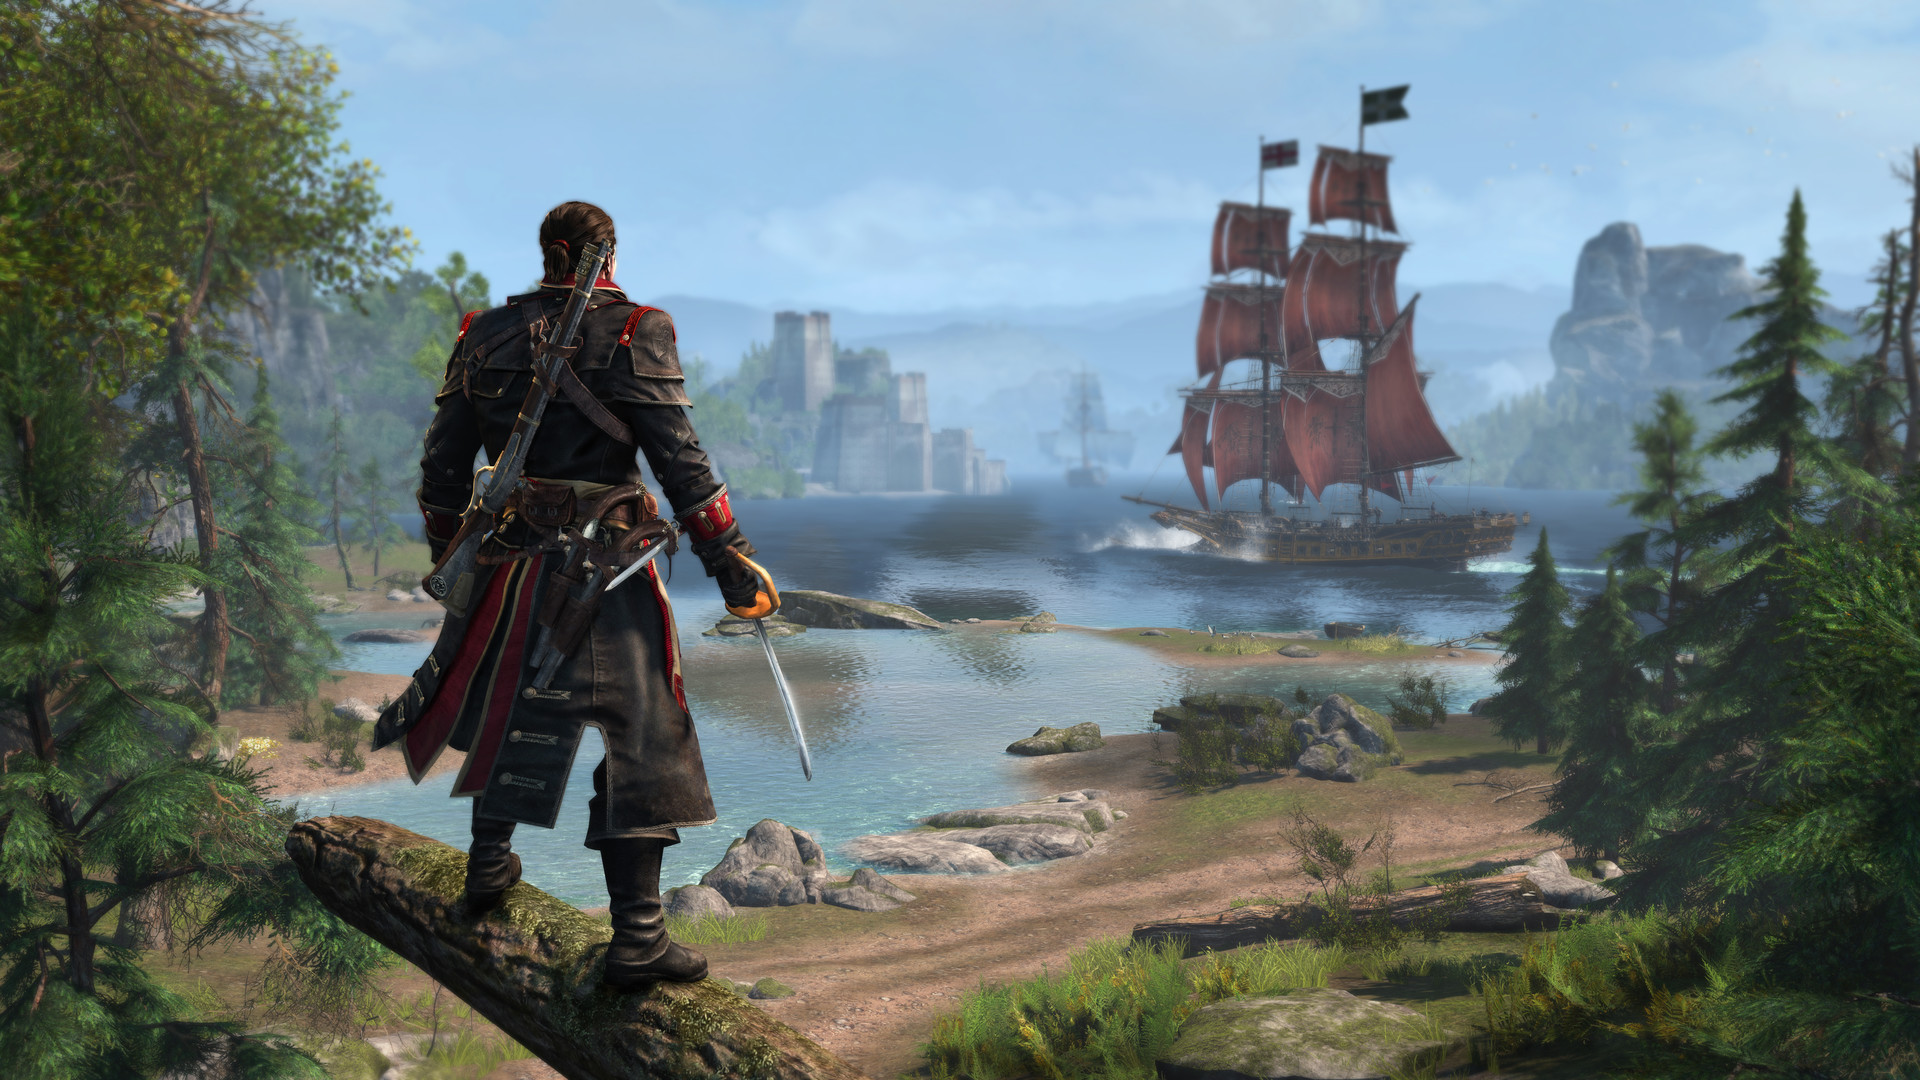 download assassin's creed rogue repack by corepack singlelink iso free for pc google fire drive direct link one ftp links magnet extra tracker torrent thepiratebay kickass torrents